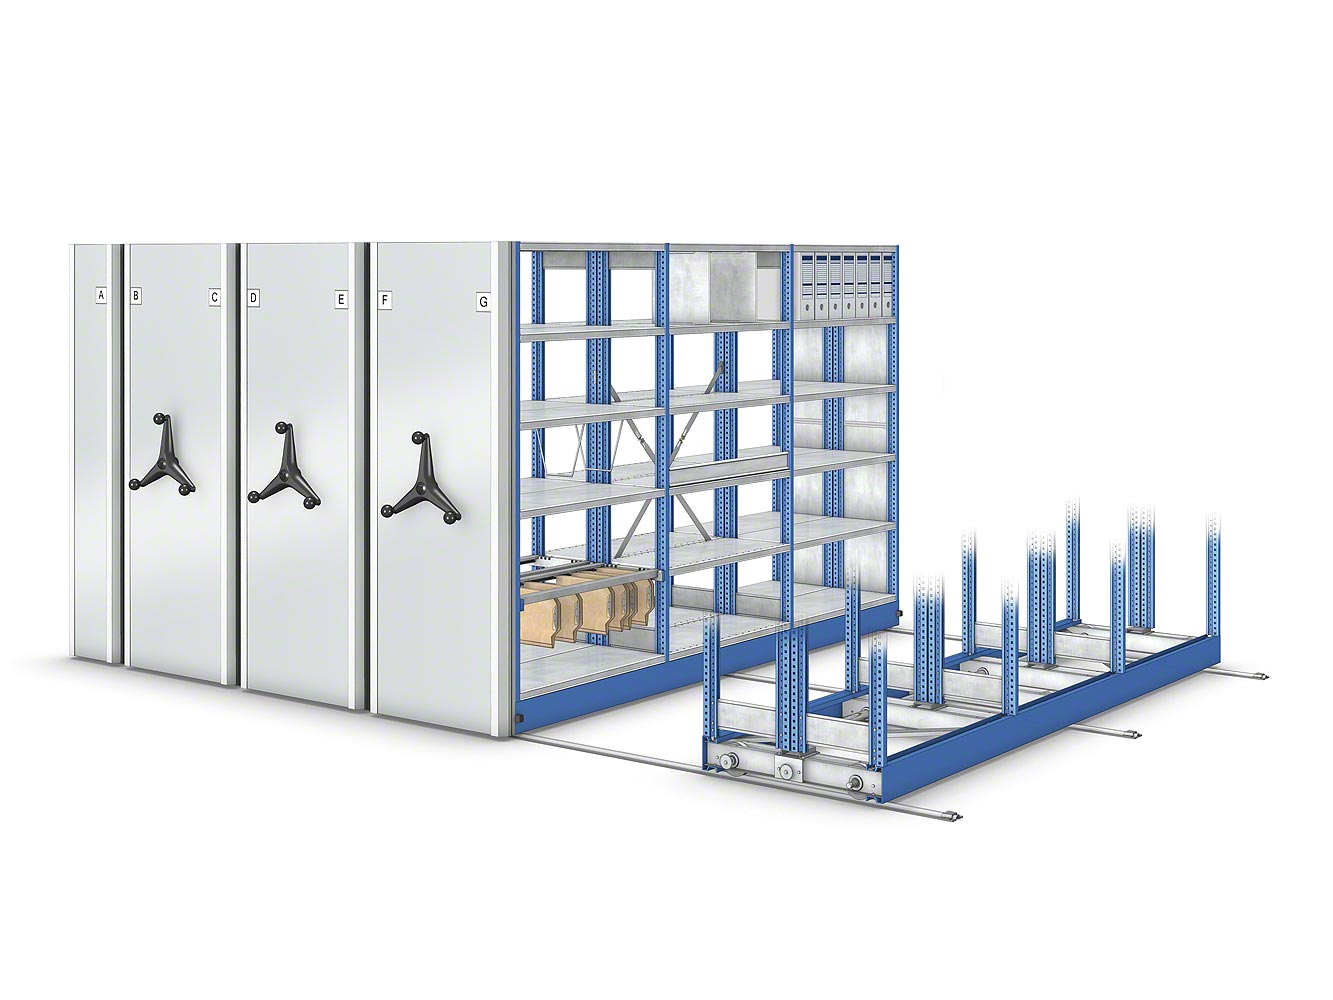 Movibloc mobile shelving